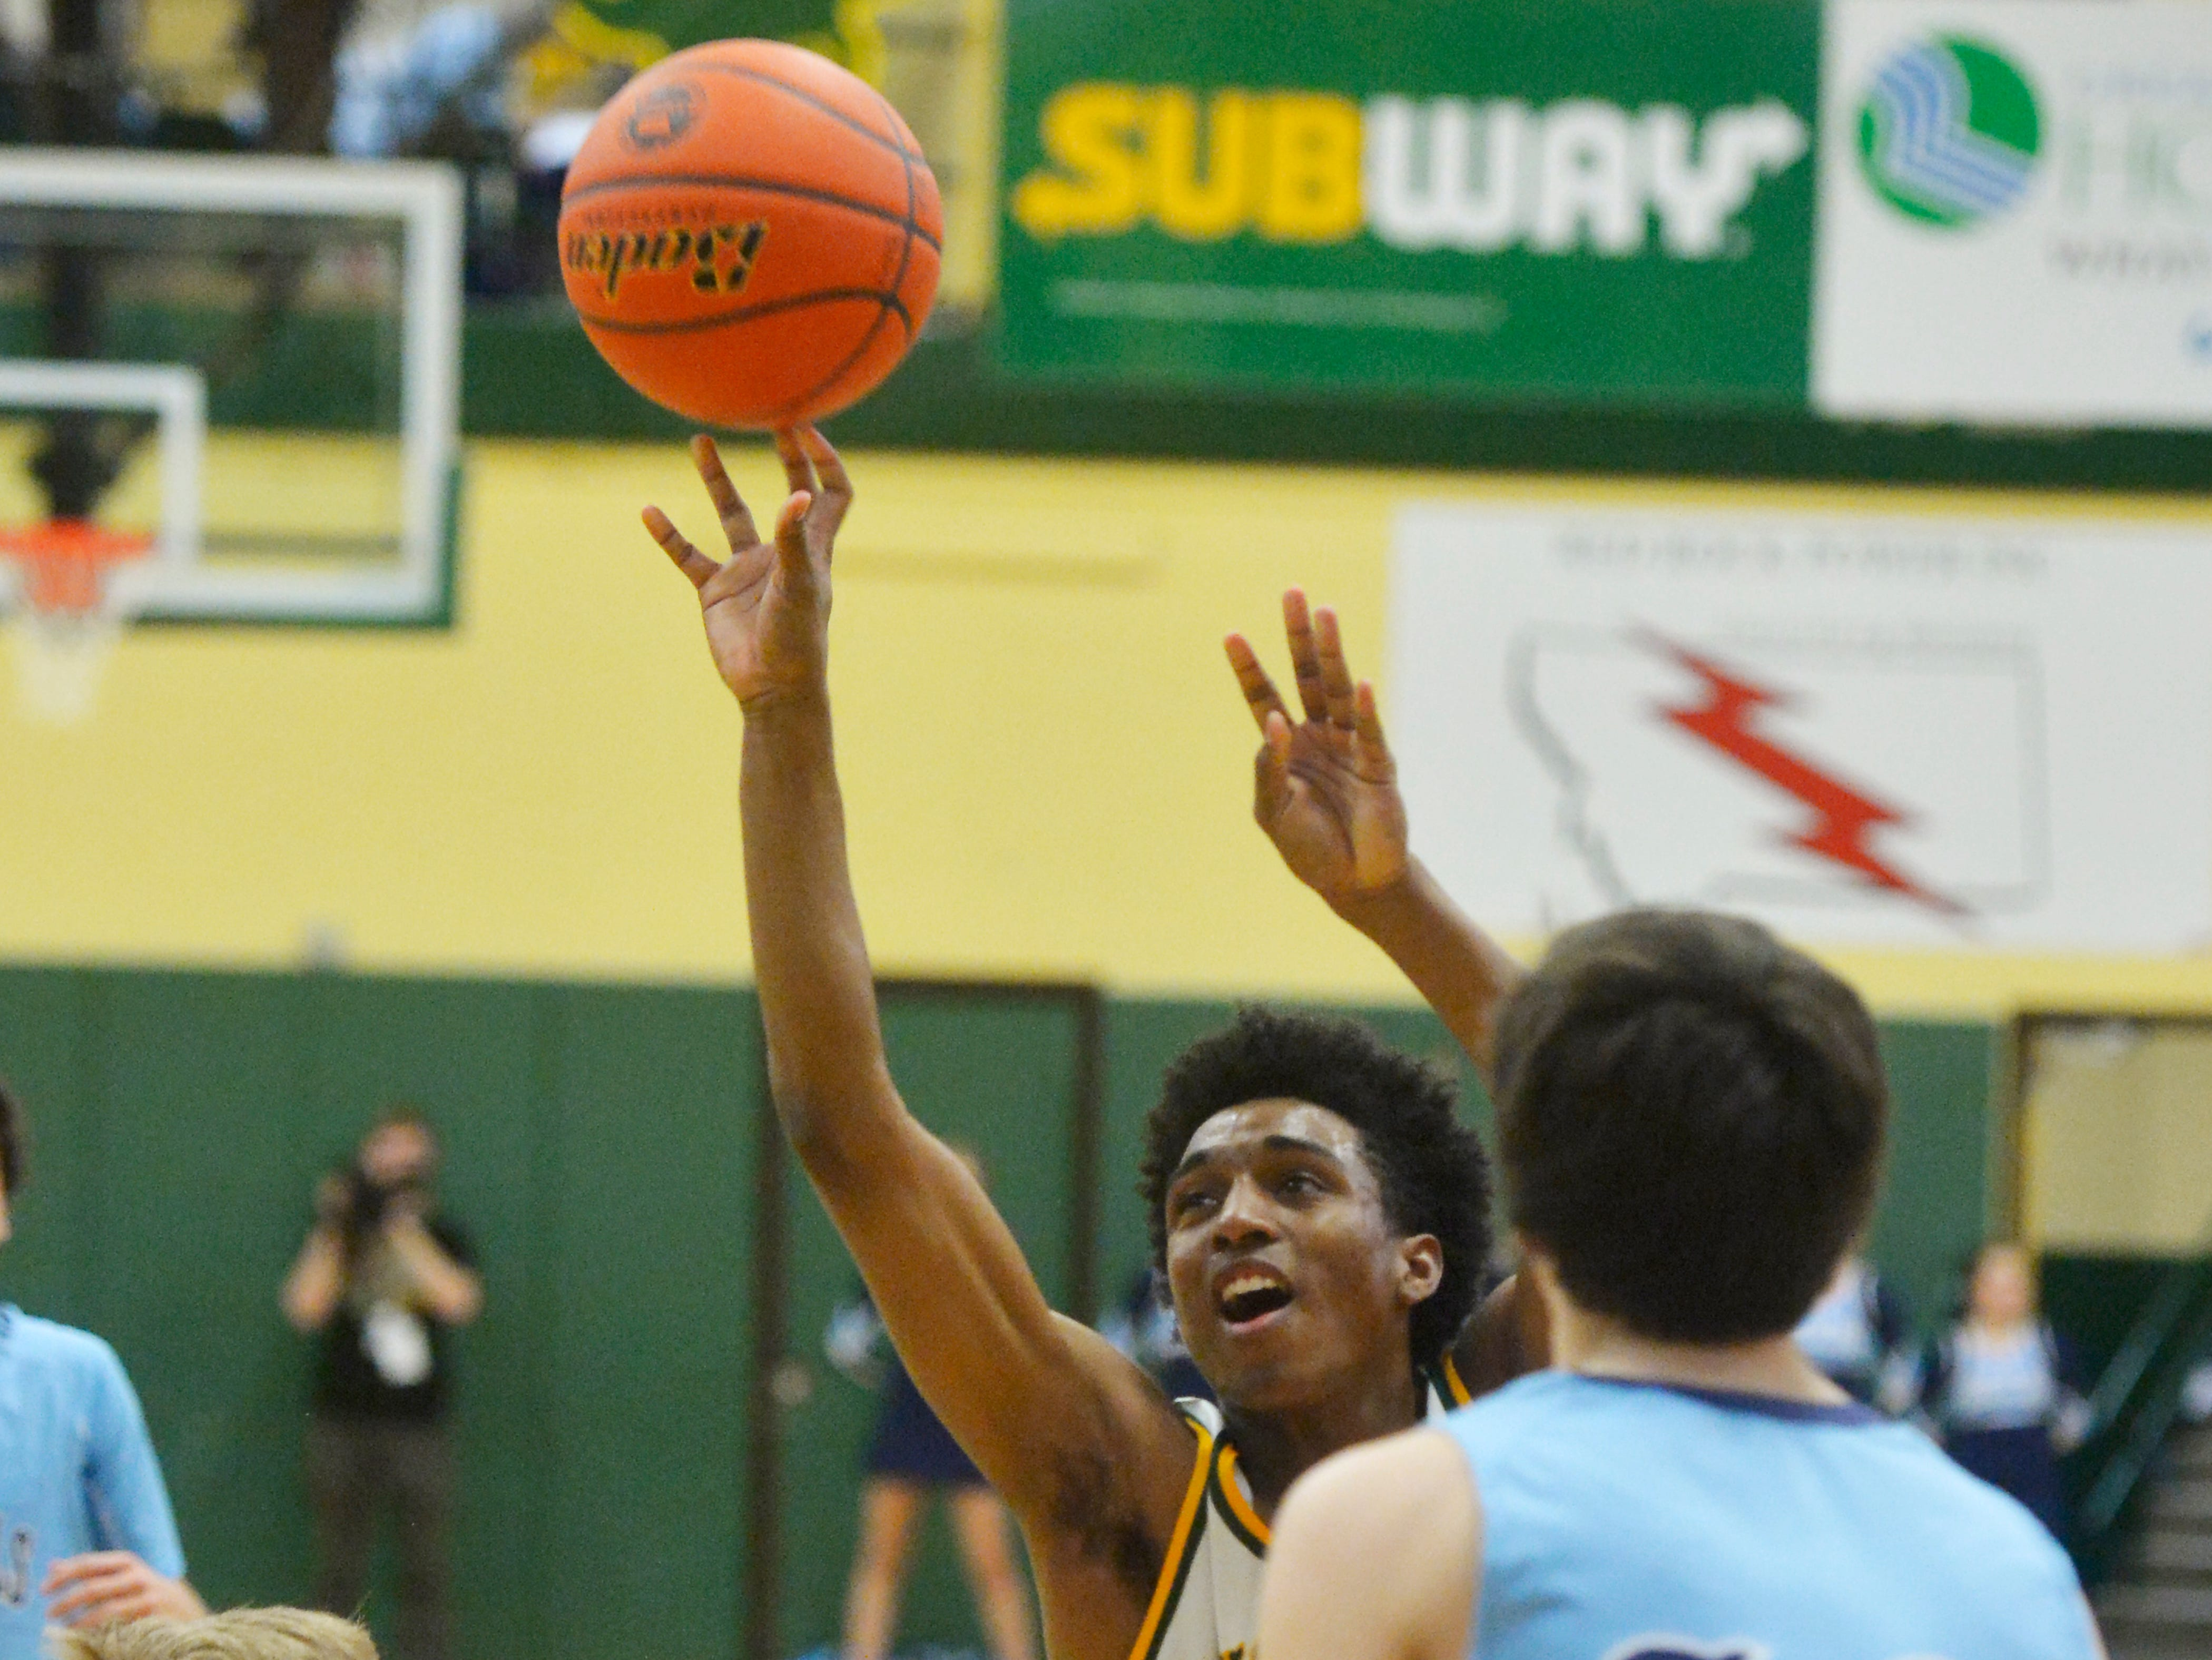 CMR's Caleb Currington attempts a shot during the semifinal game of the Eastern AA Basketball Tournament at the CMR Fieldhouse, Friday.